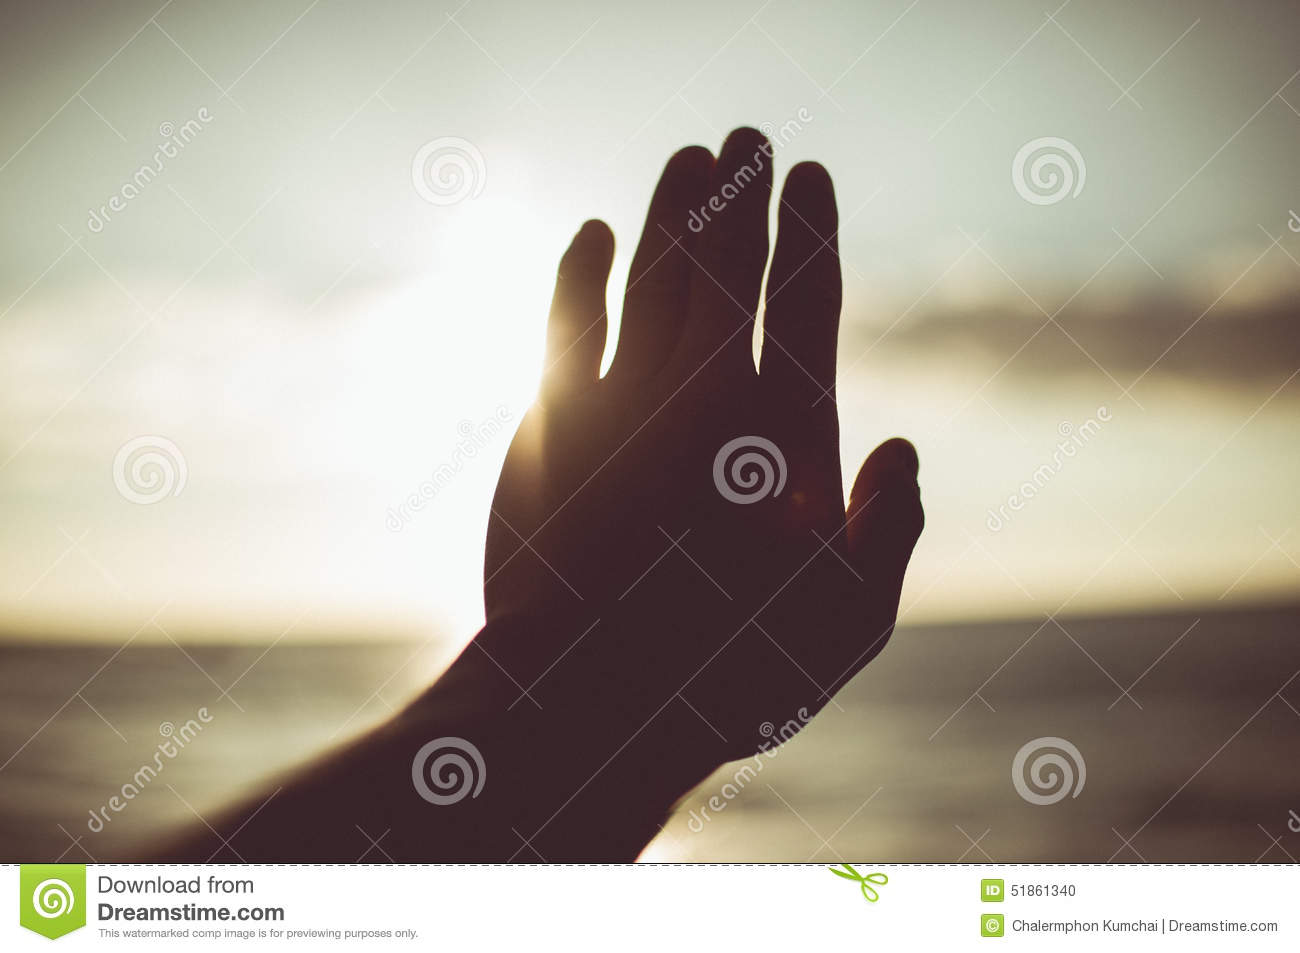 Element Of Design Tone : Hand to sun element of design vintage tone color stock photo